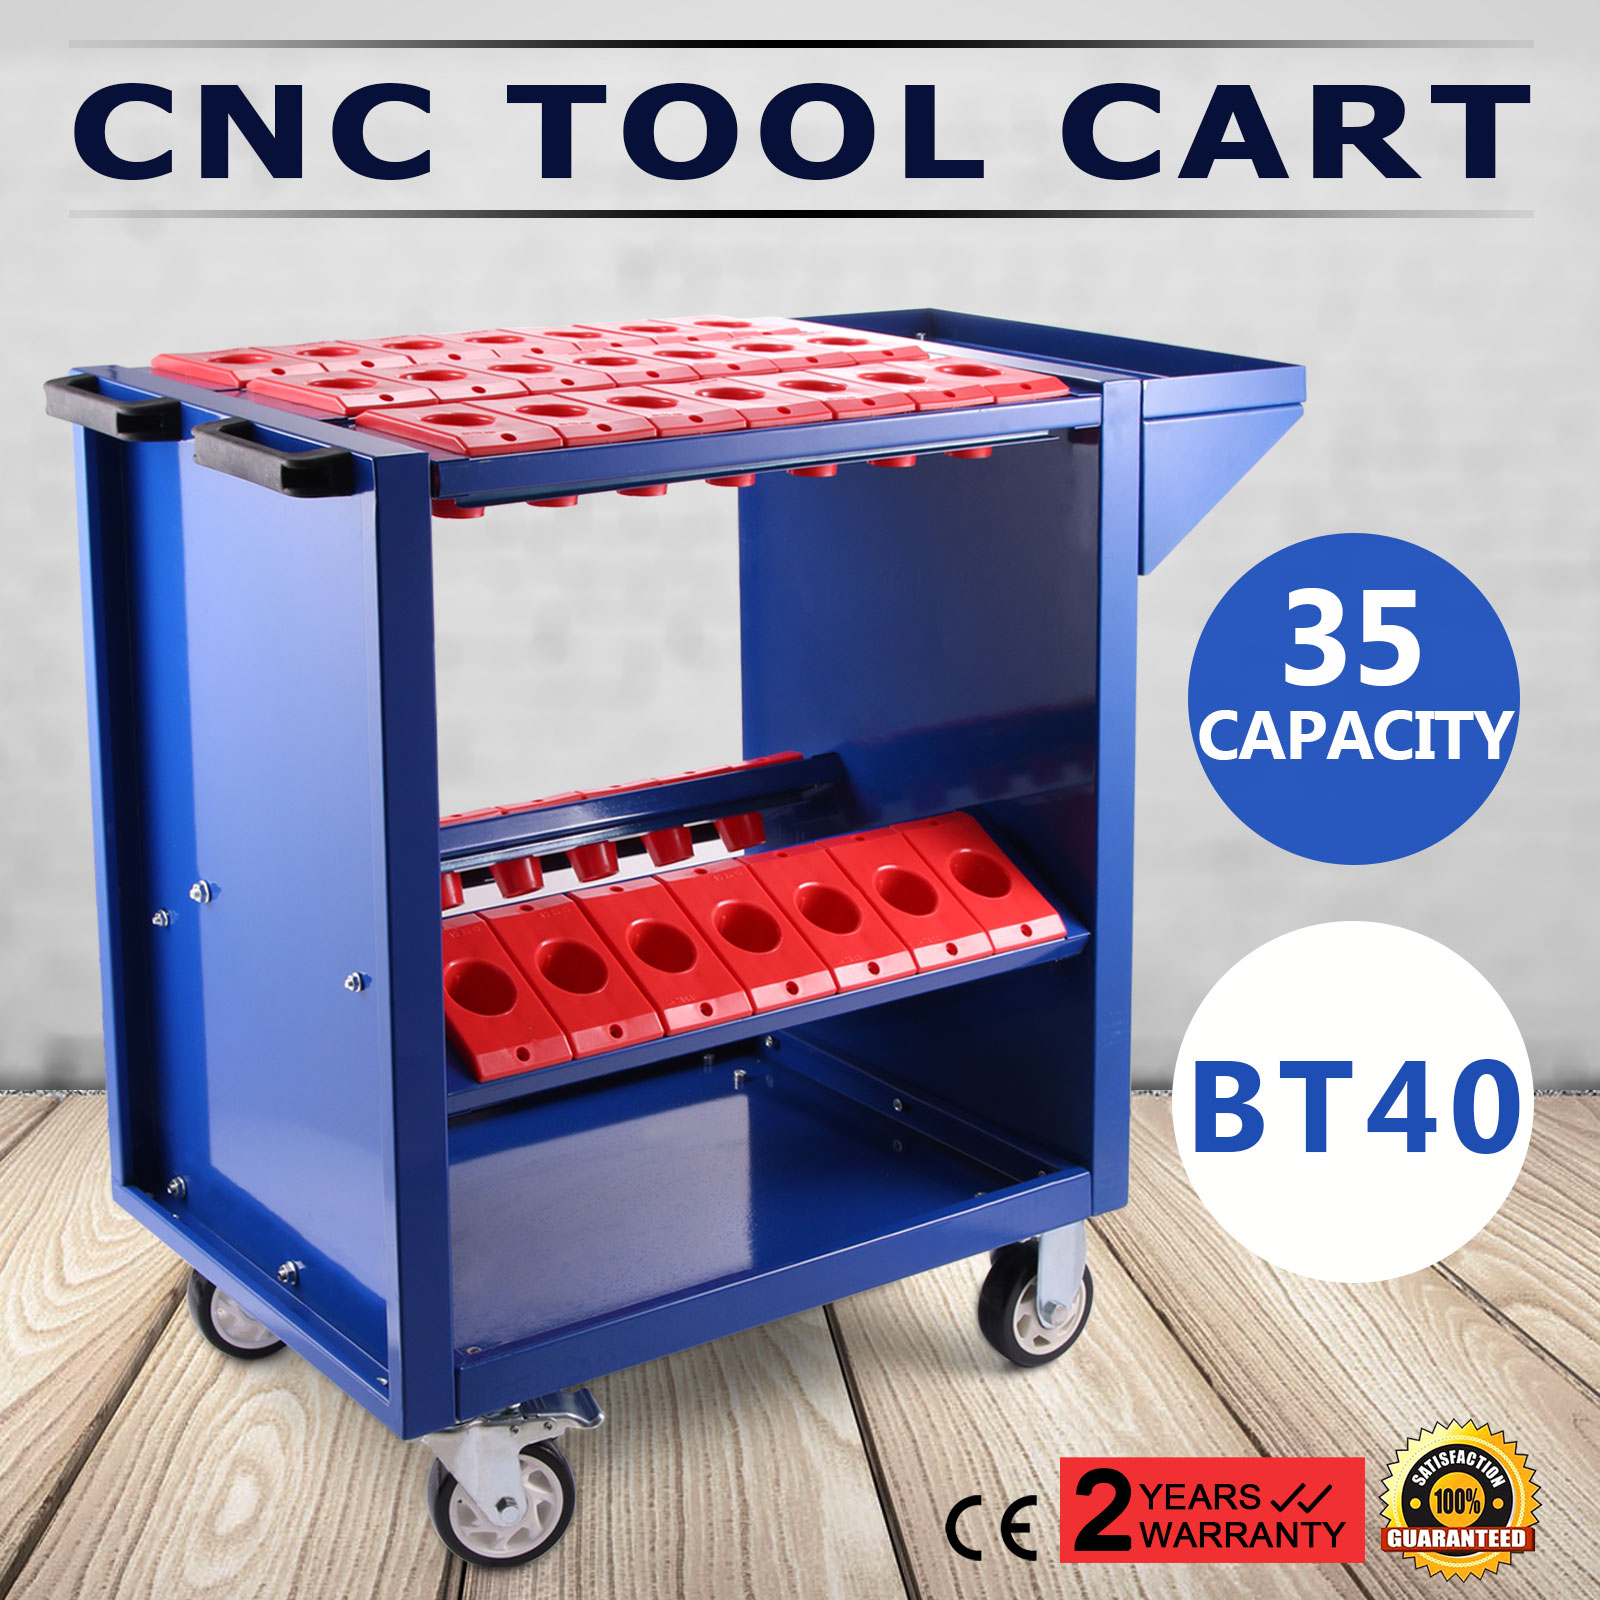 CNC Tool Cart BT40 CNC Trolley Cart Holders Toolscoot White CAT40 Workstation